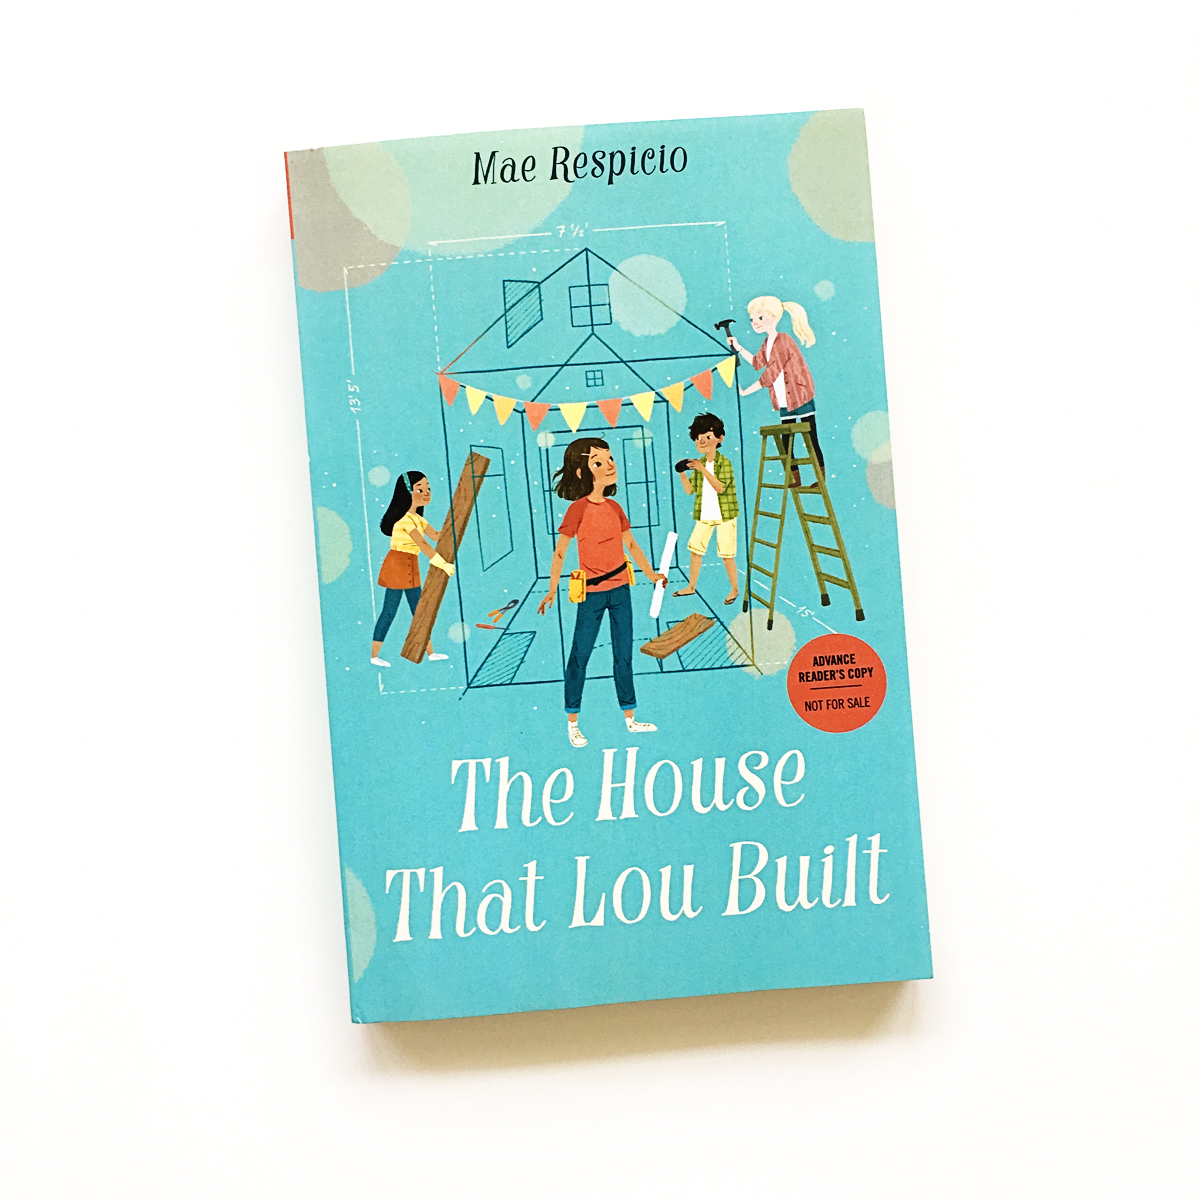 The House That Lou Built | Books For Diversity